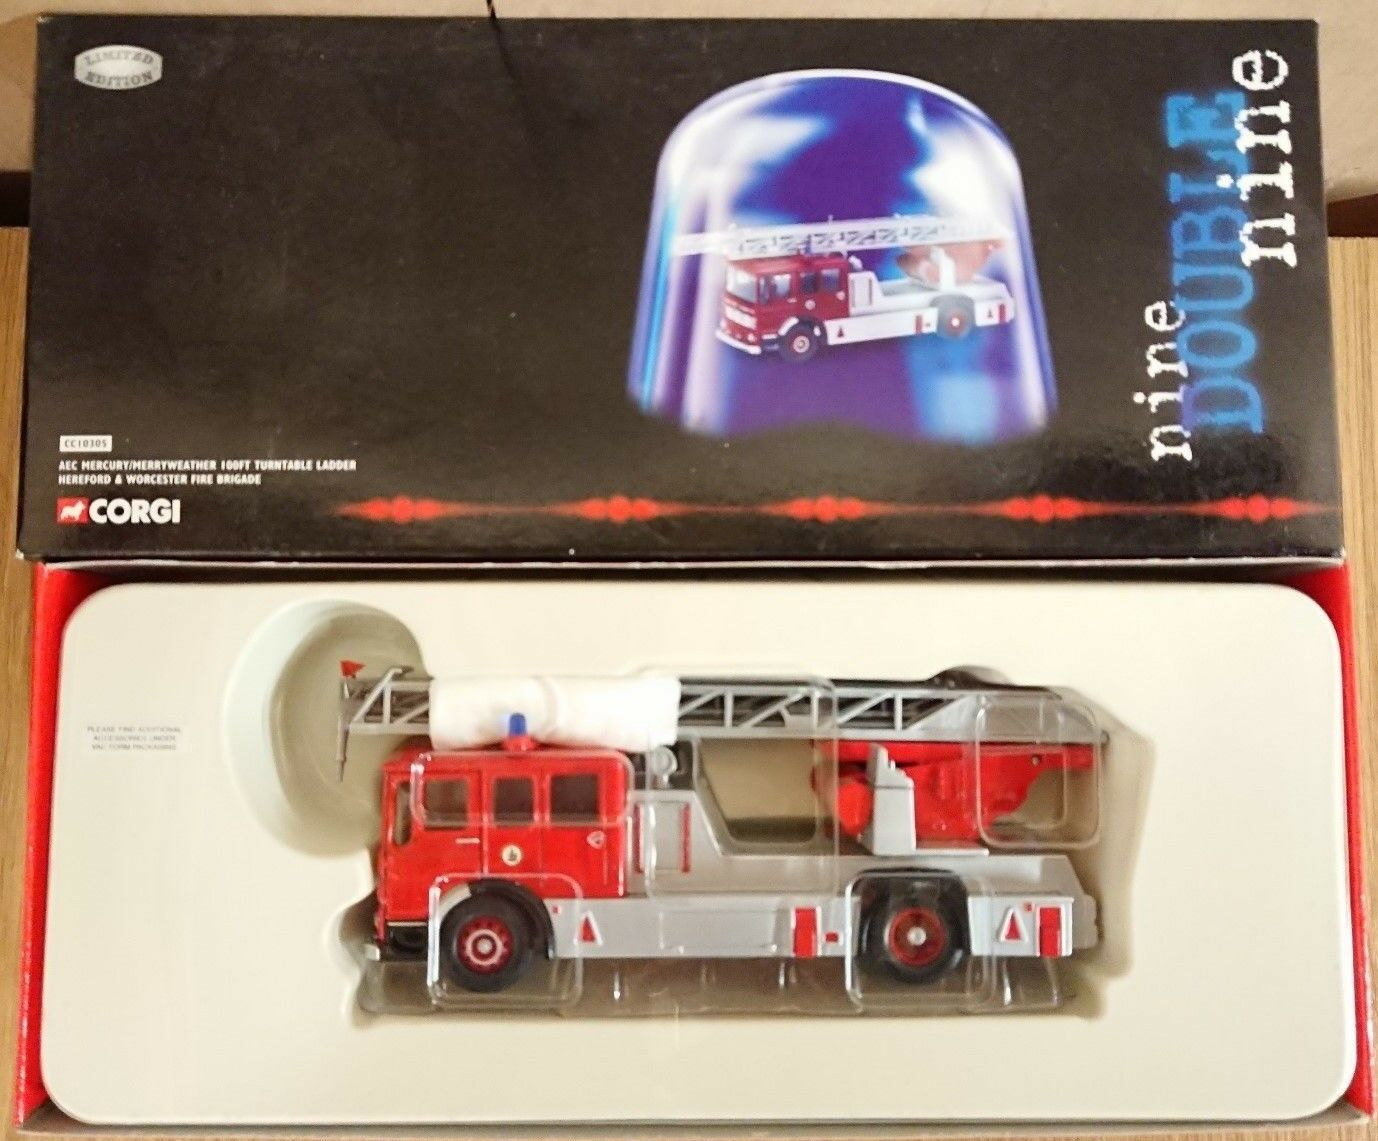 Corgi 999 CC10305 AEC Mercury Merryweather Turntable Ltd Ed. No. 0002 of 2500